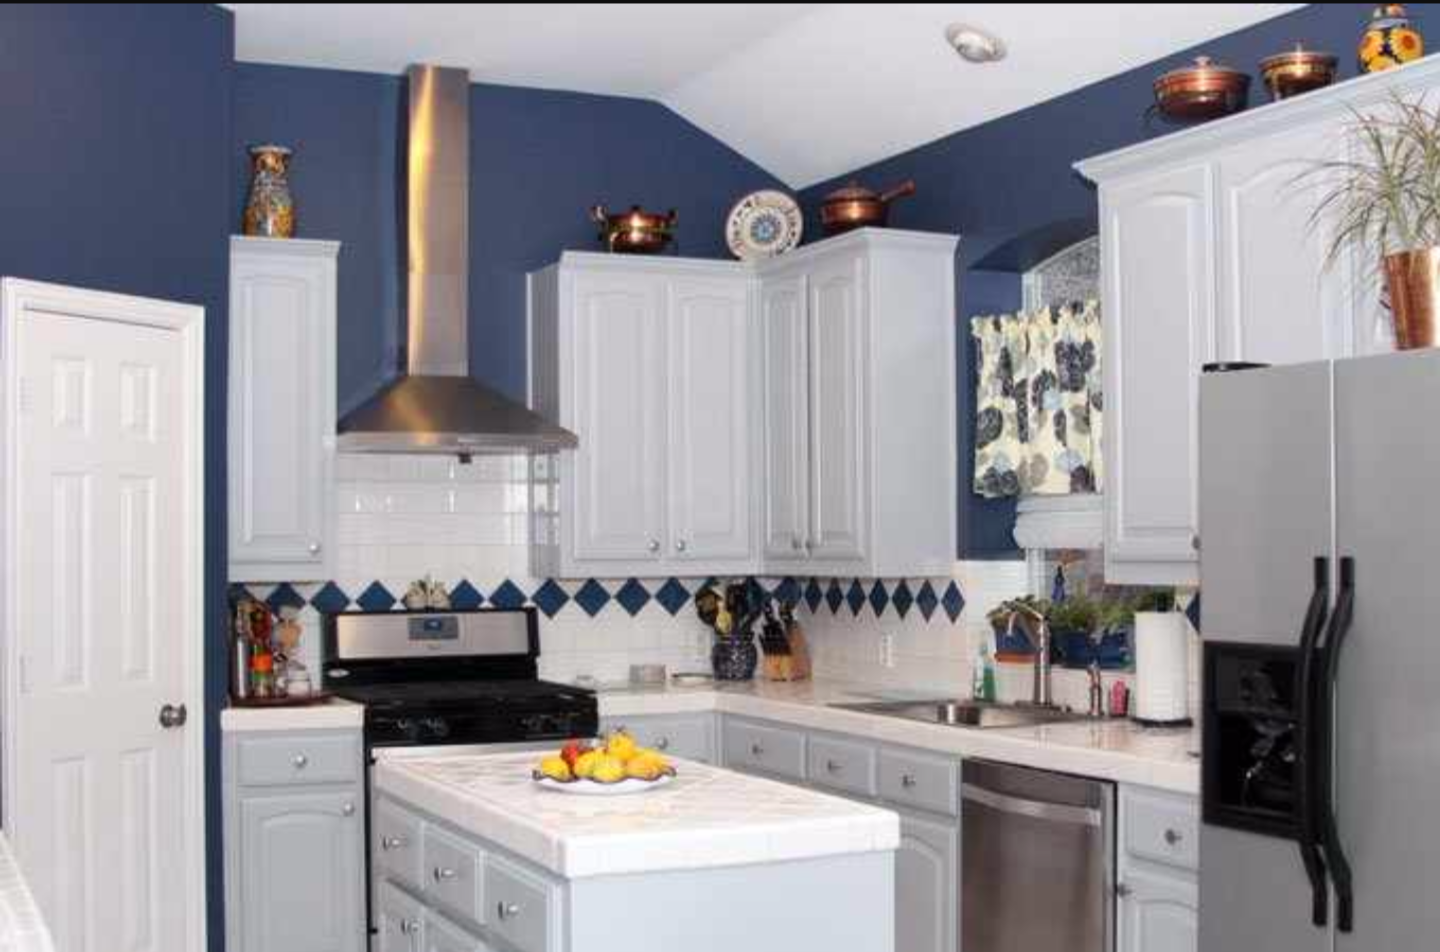 Kitchen Cabinet Painting - Painting Kitchen Cabinets and ...